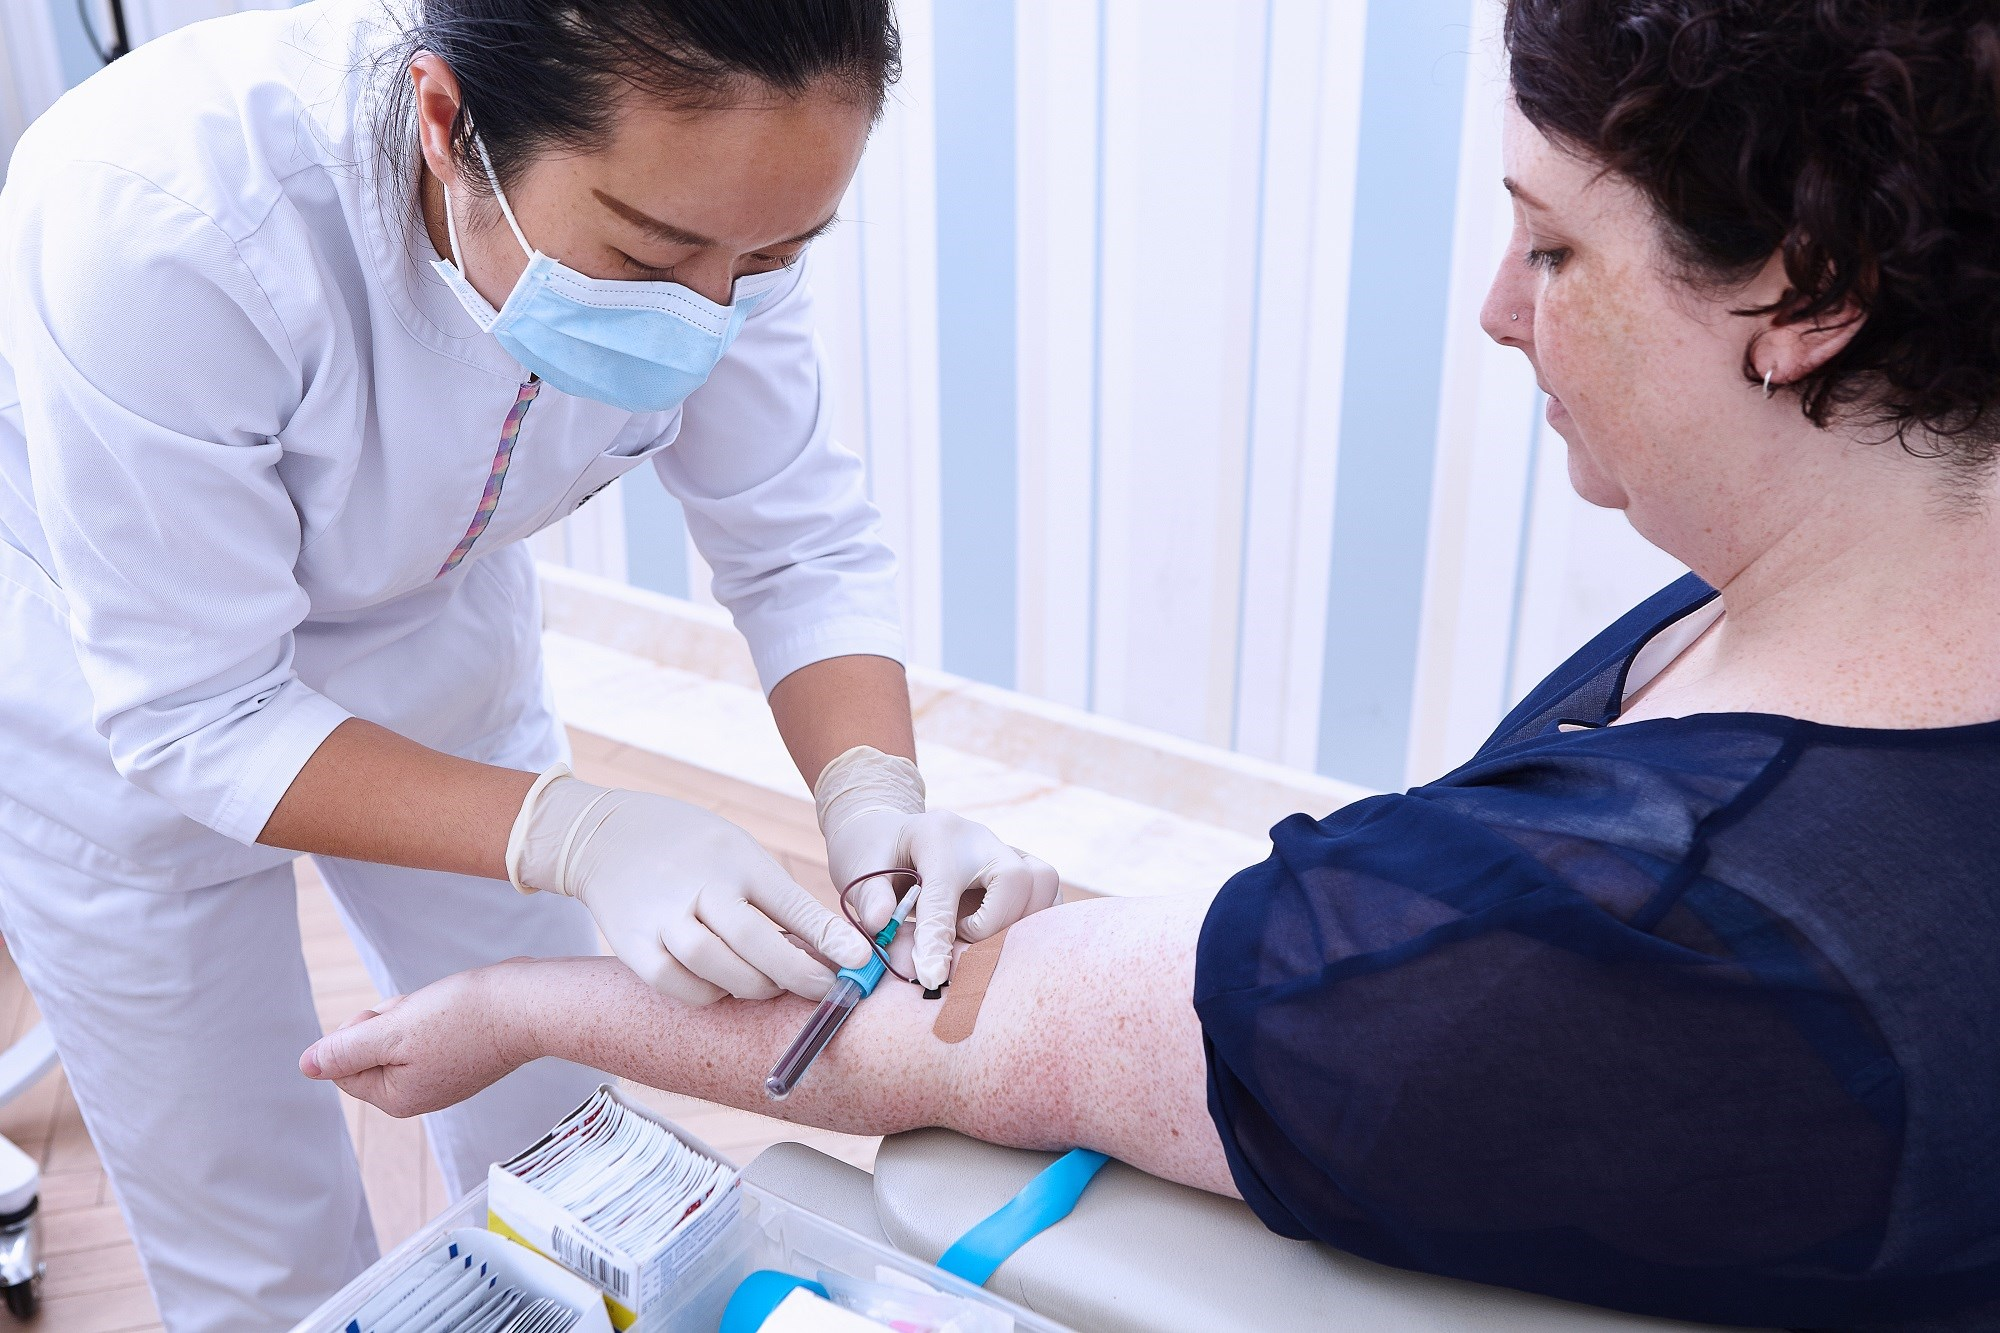 NT-proBNP May Predict Cardiovascular Outcomes in Type 2 Diabetes